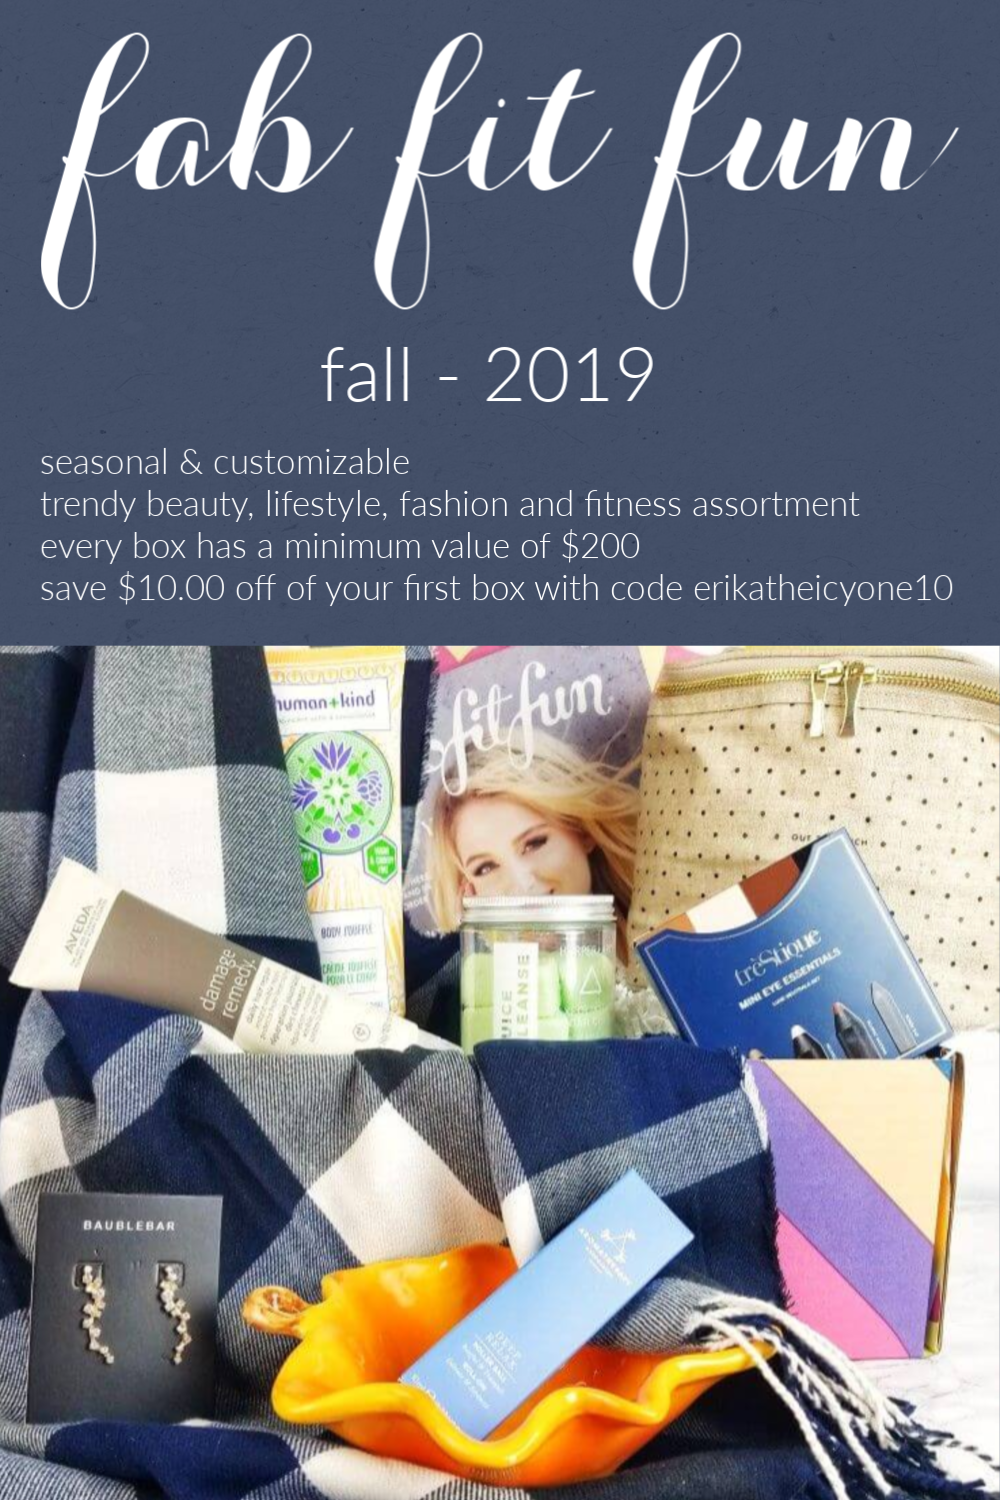 Check out My Very First Fab Fit Fun Seasonal Subscription Box for Fall - 2019 2